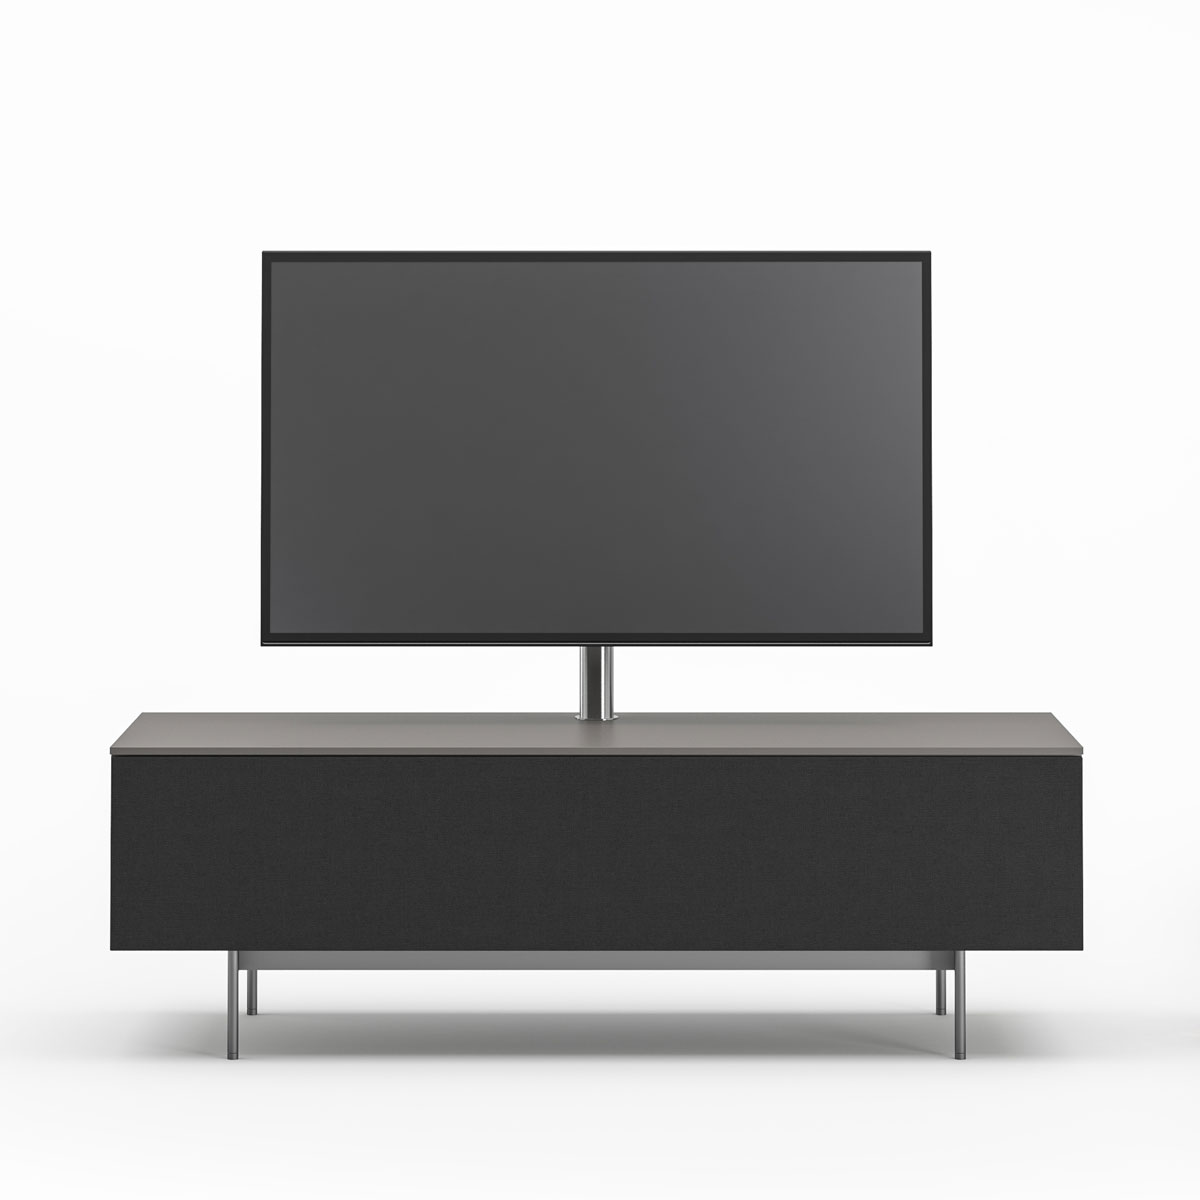 spectral next nx lowboards bei hifi tv. Black Bedroom Furniture Sets. Home Design Ideas